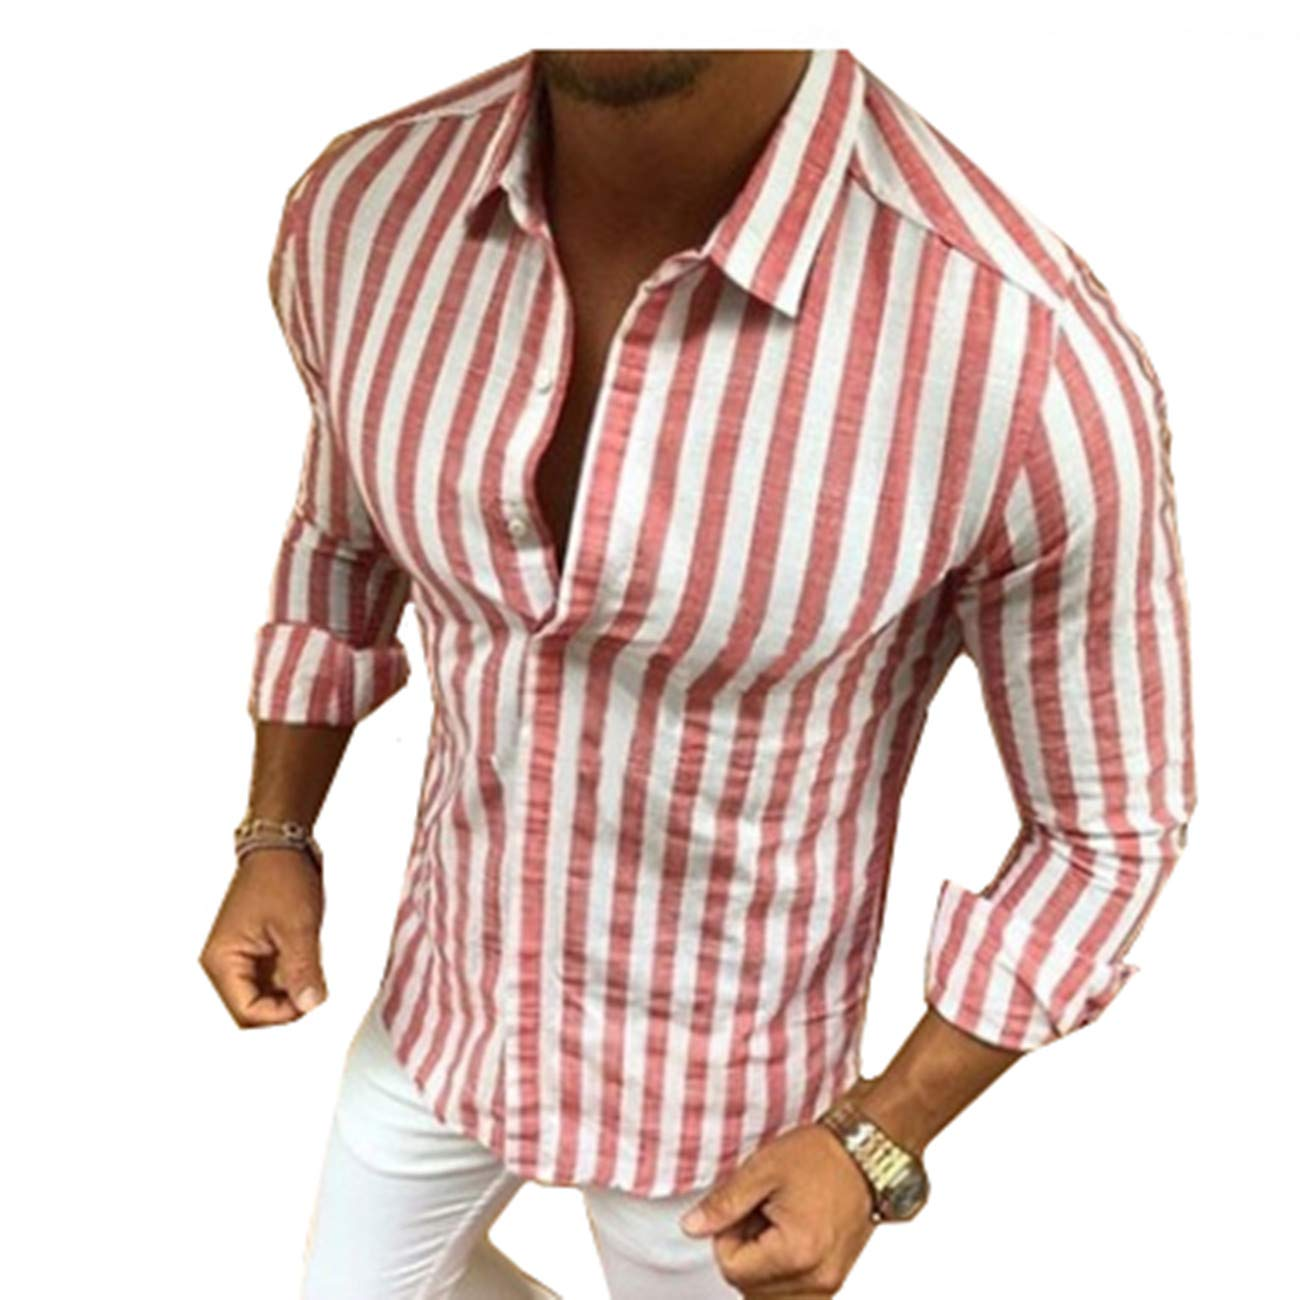 Baonmy Mens Casual Vertical Striped Slim Fit Long Sleeve Button Down Dress Shirts